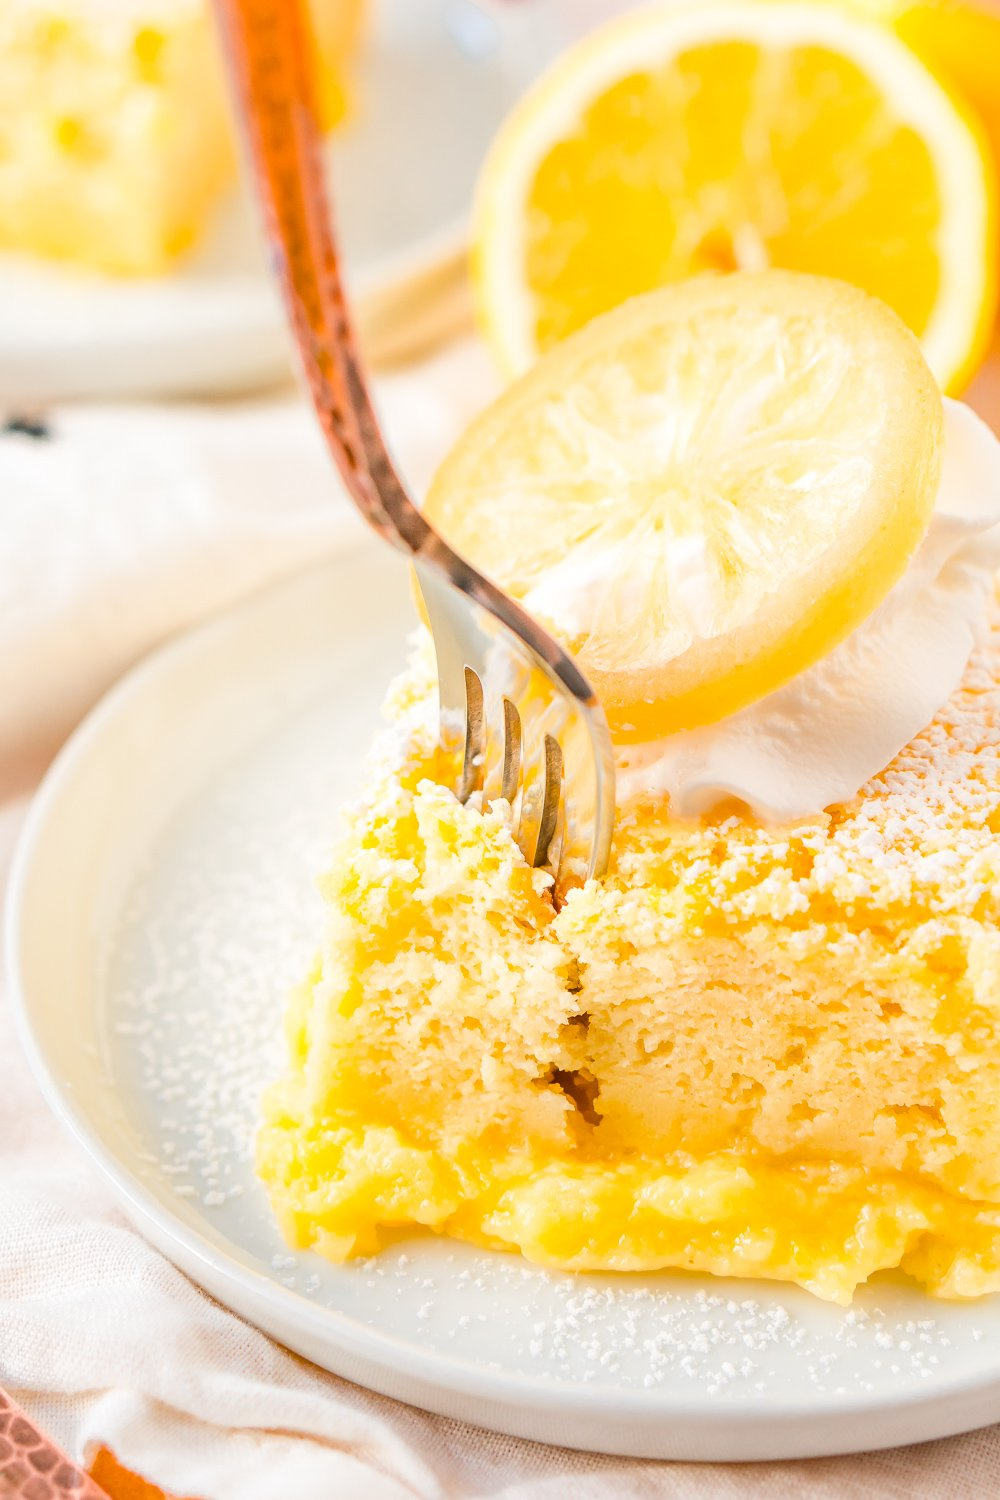 Fork digging into a slice of lemon cake on a small white plate.